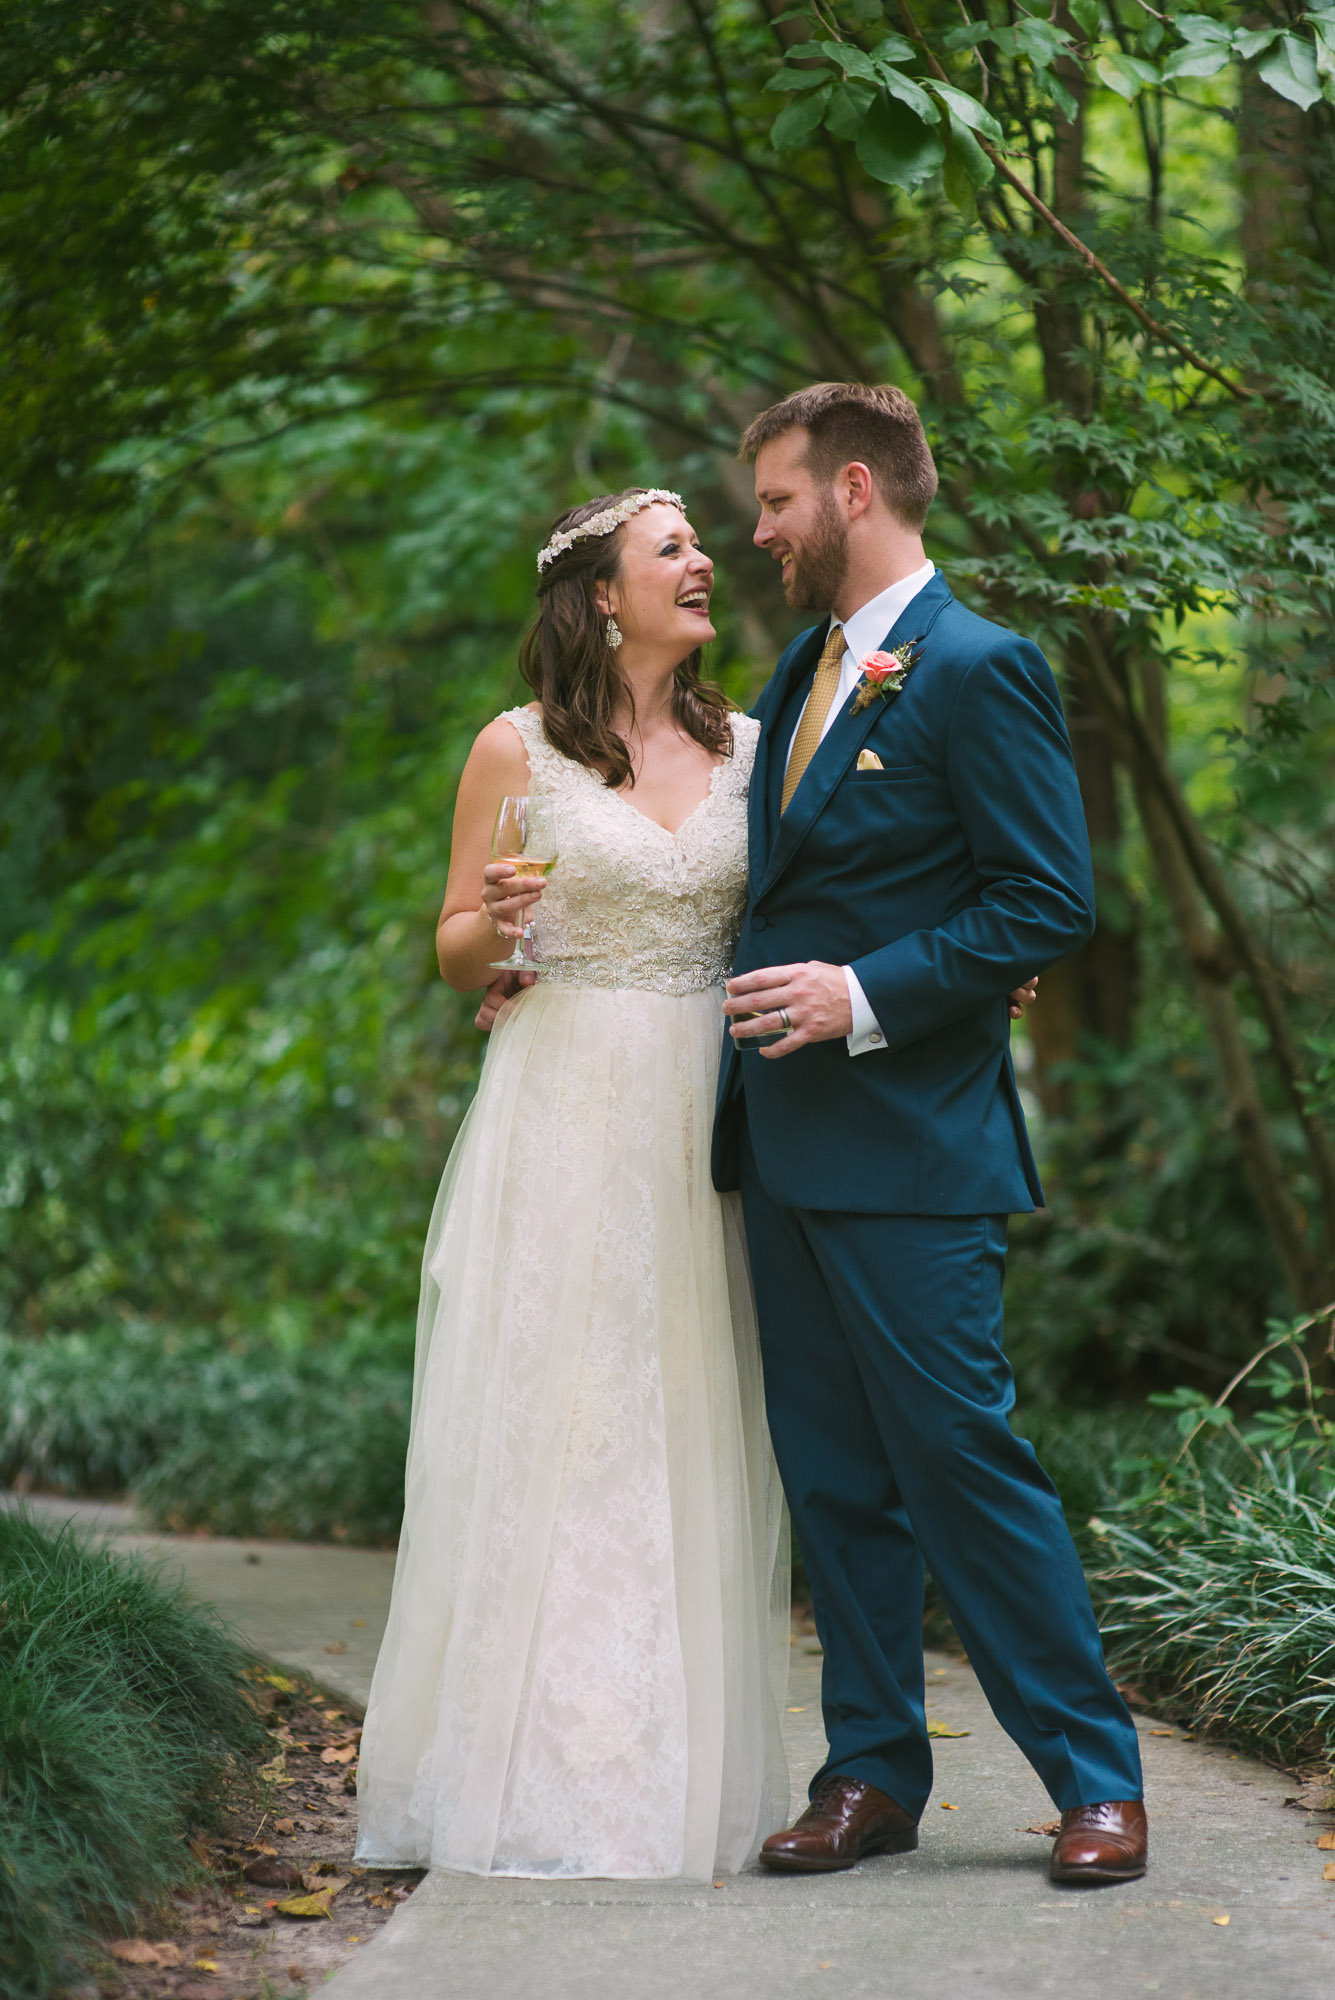 Atlanta; Wedding; Cator Woolford Gardens; Photographer; LeahAndMark & Co.; Outdoor; Fall Wedding; Summer Wedding; Green; Nature; Traditional